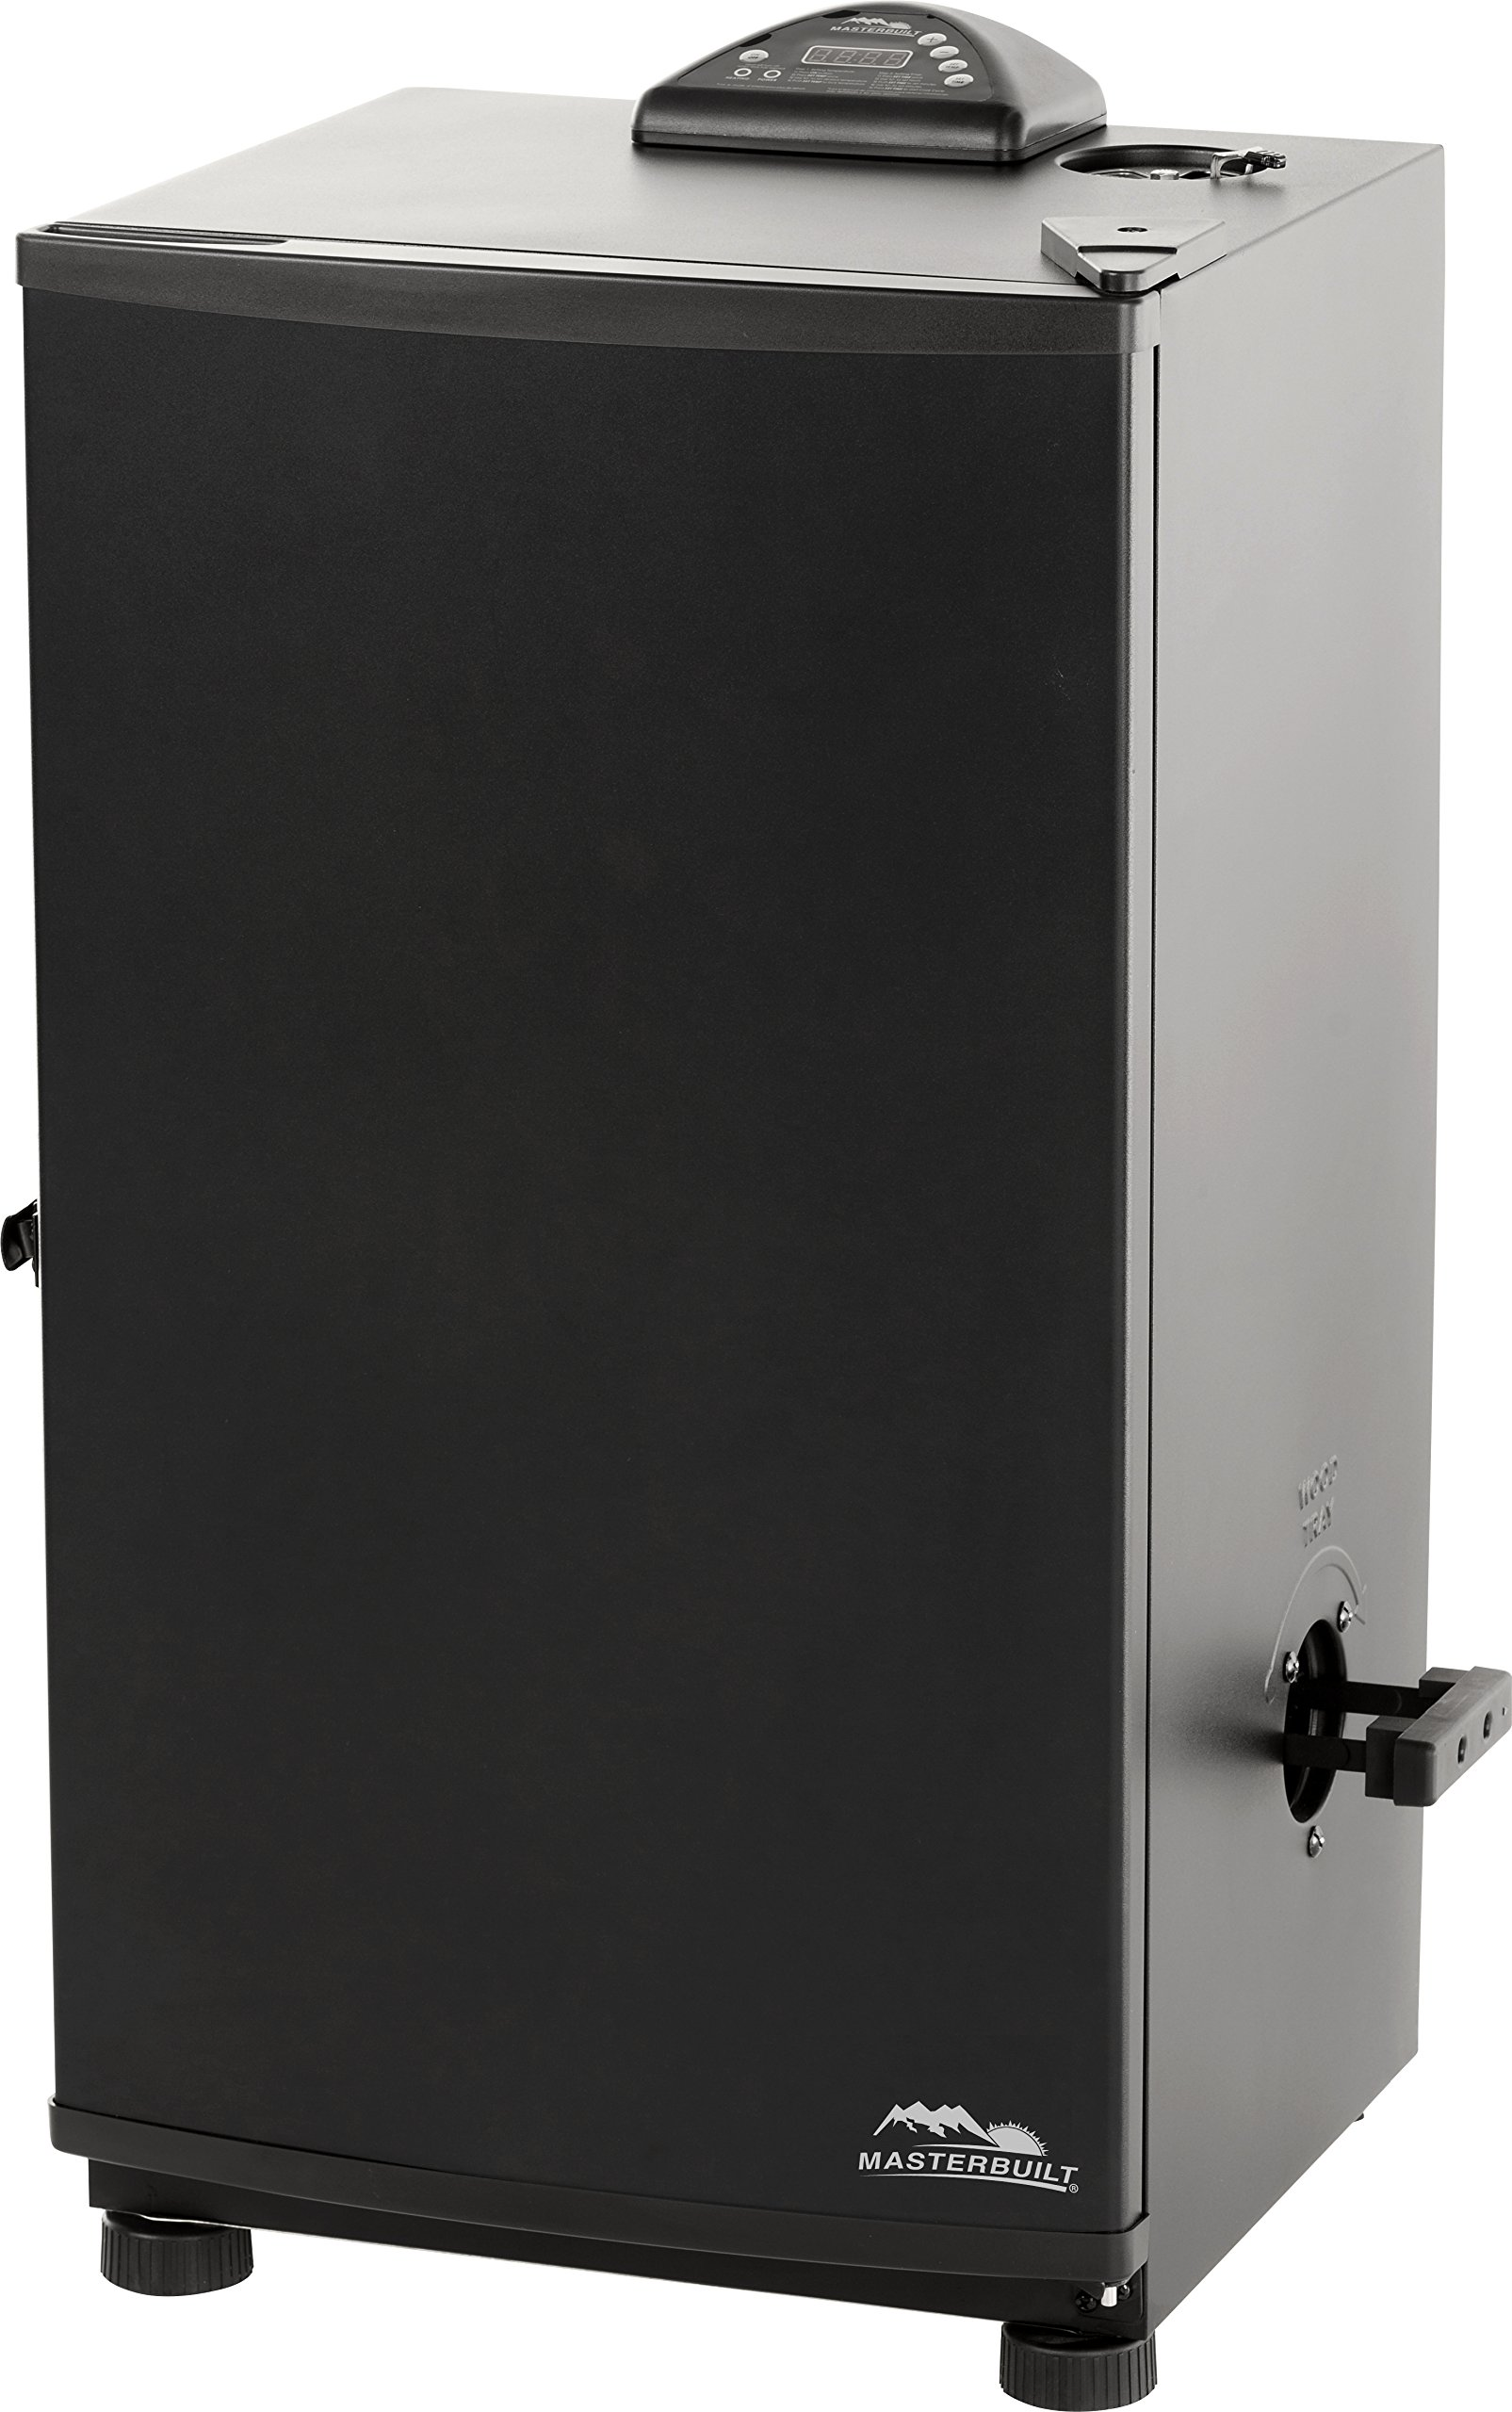 Masterbuilt 20071117 30'' Digital Electric Smoker